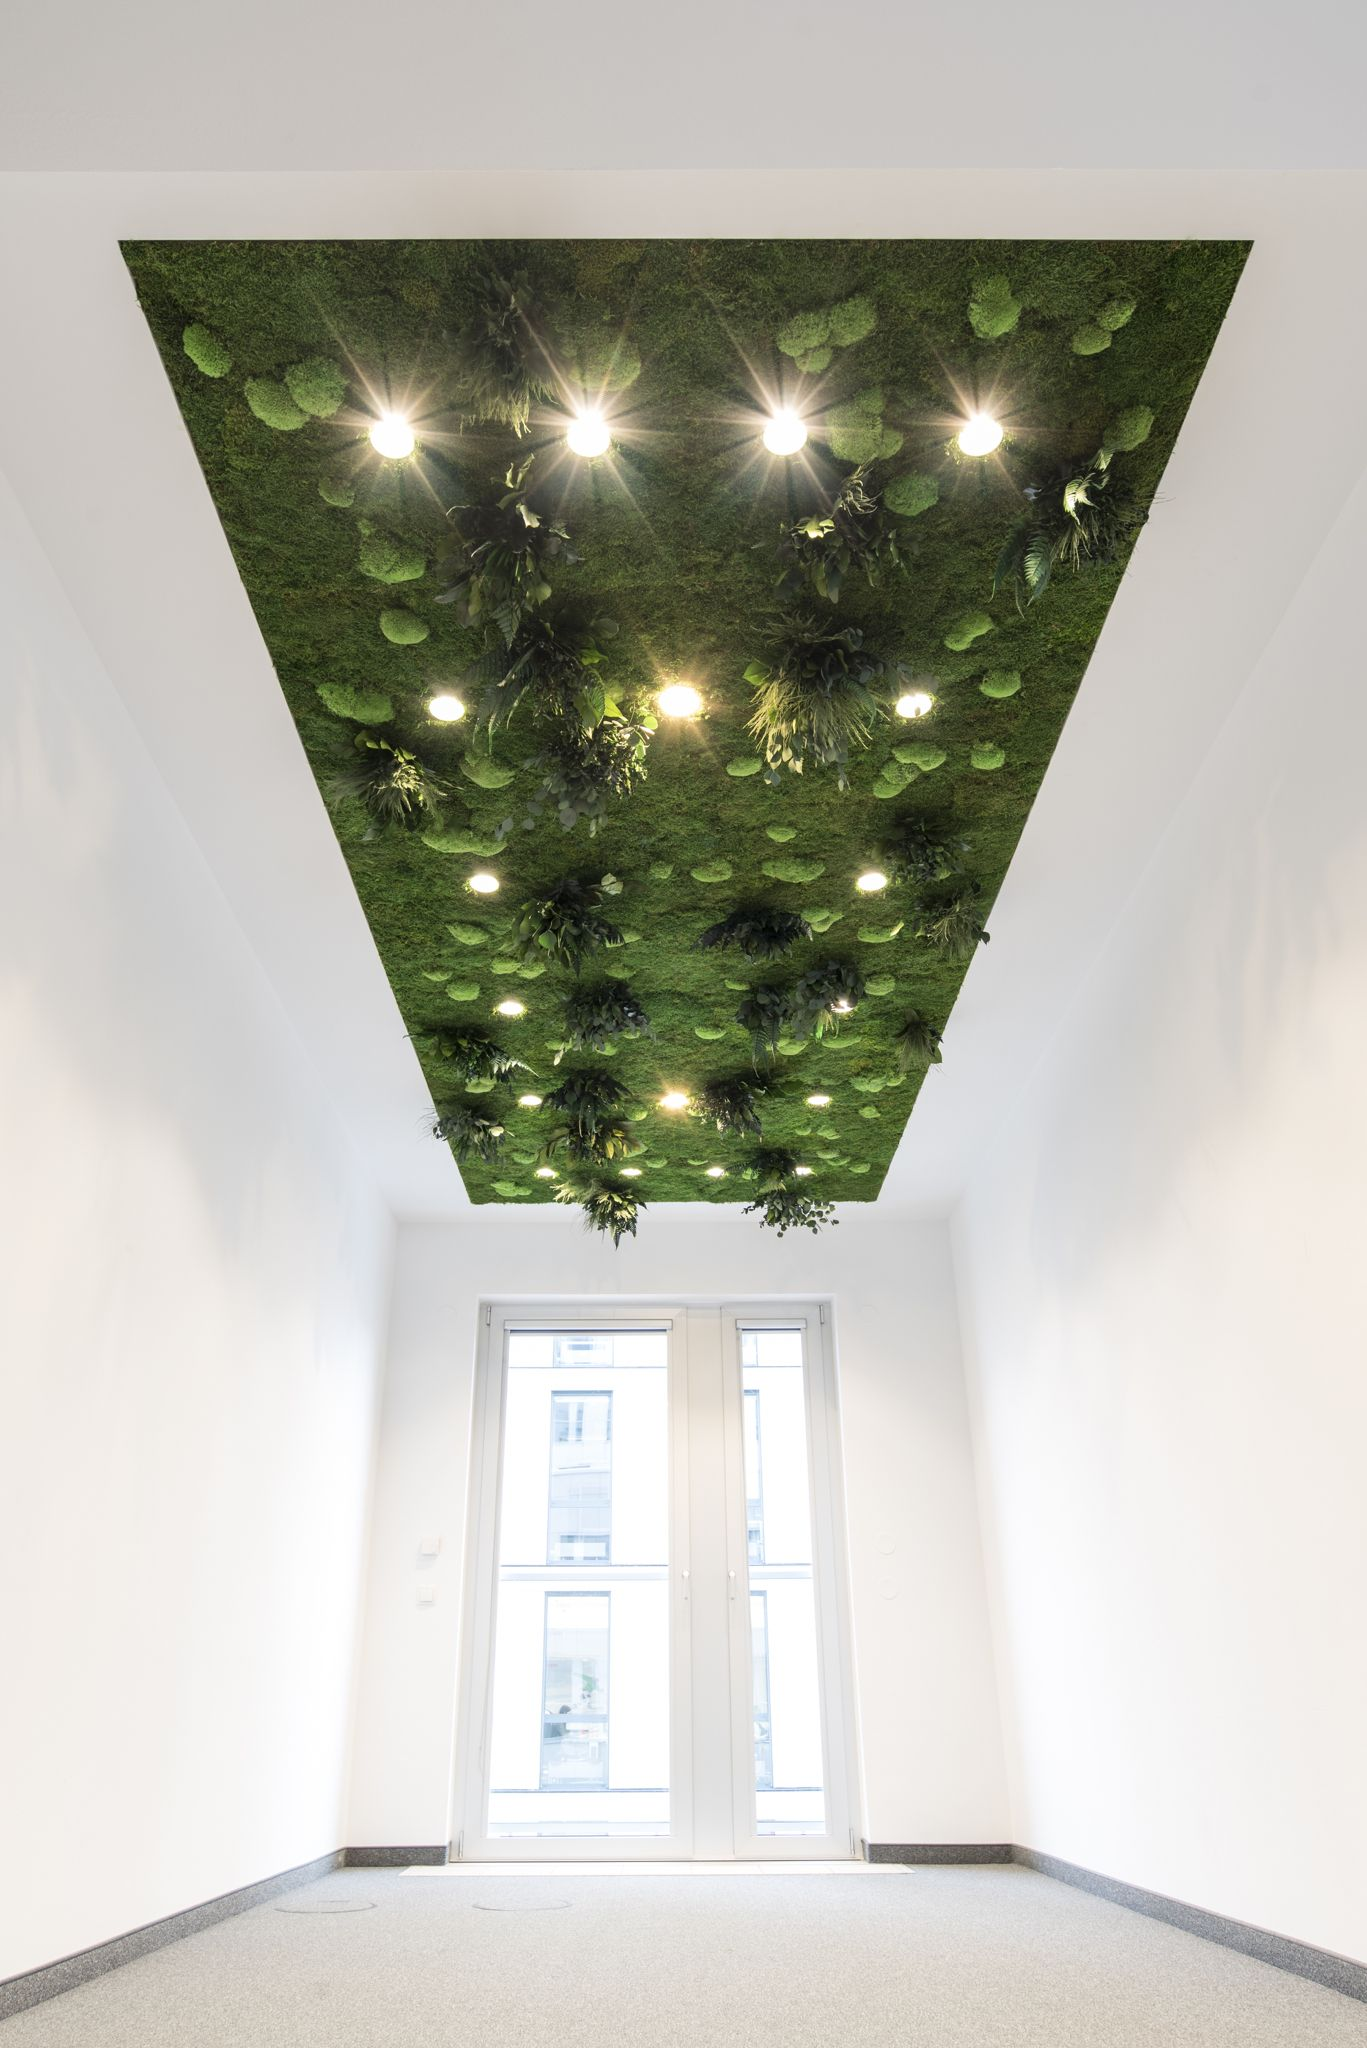 Ceiling Garden Seems Almost Like An Optical Illusion